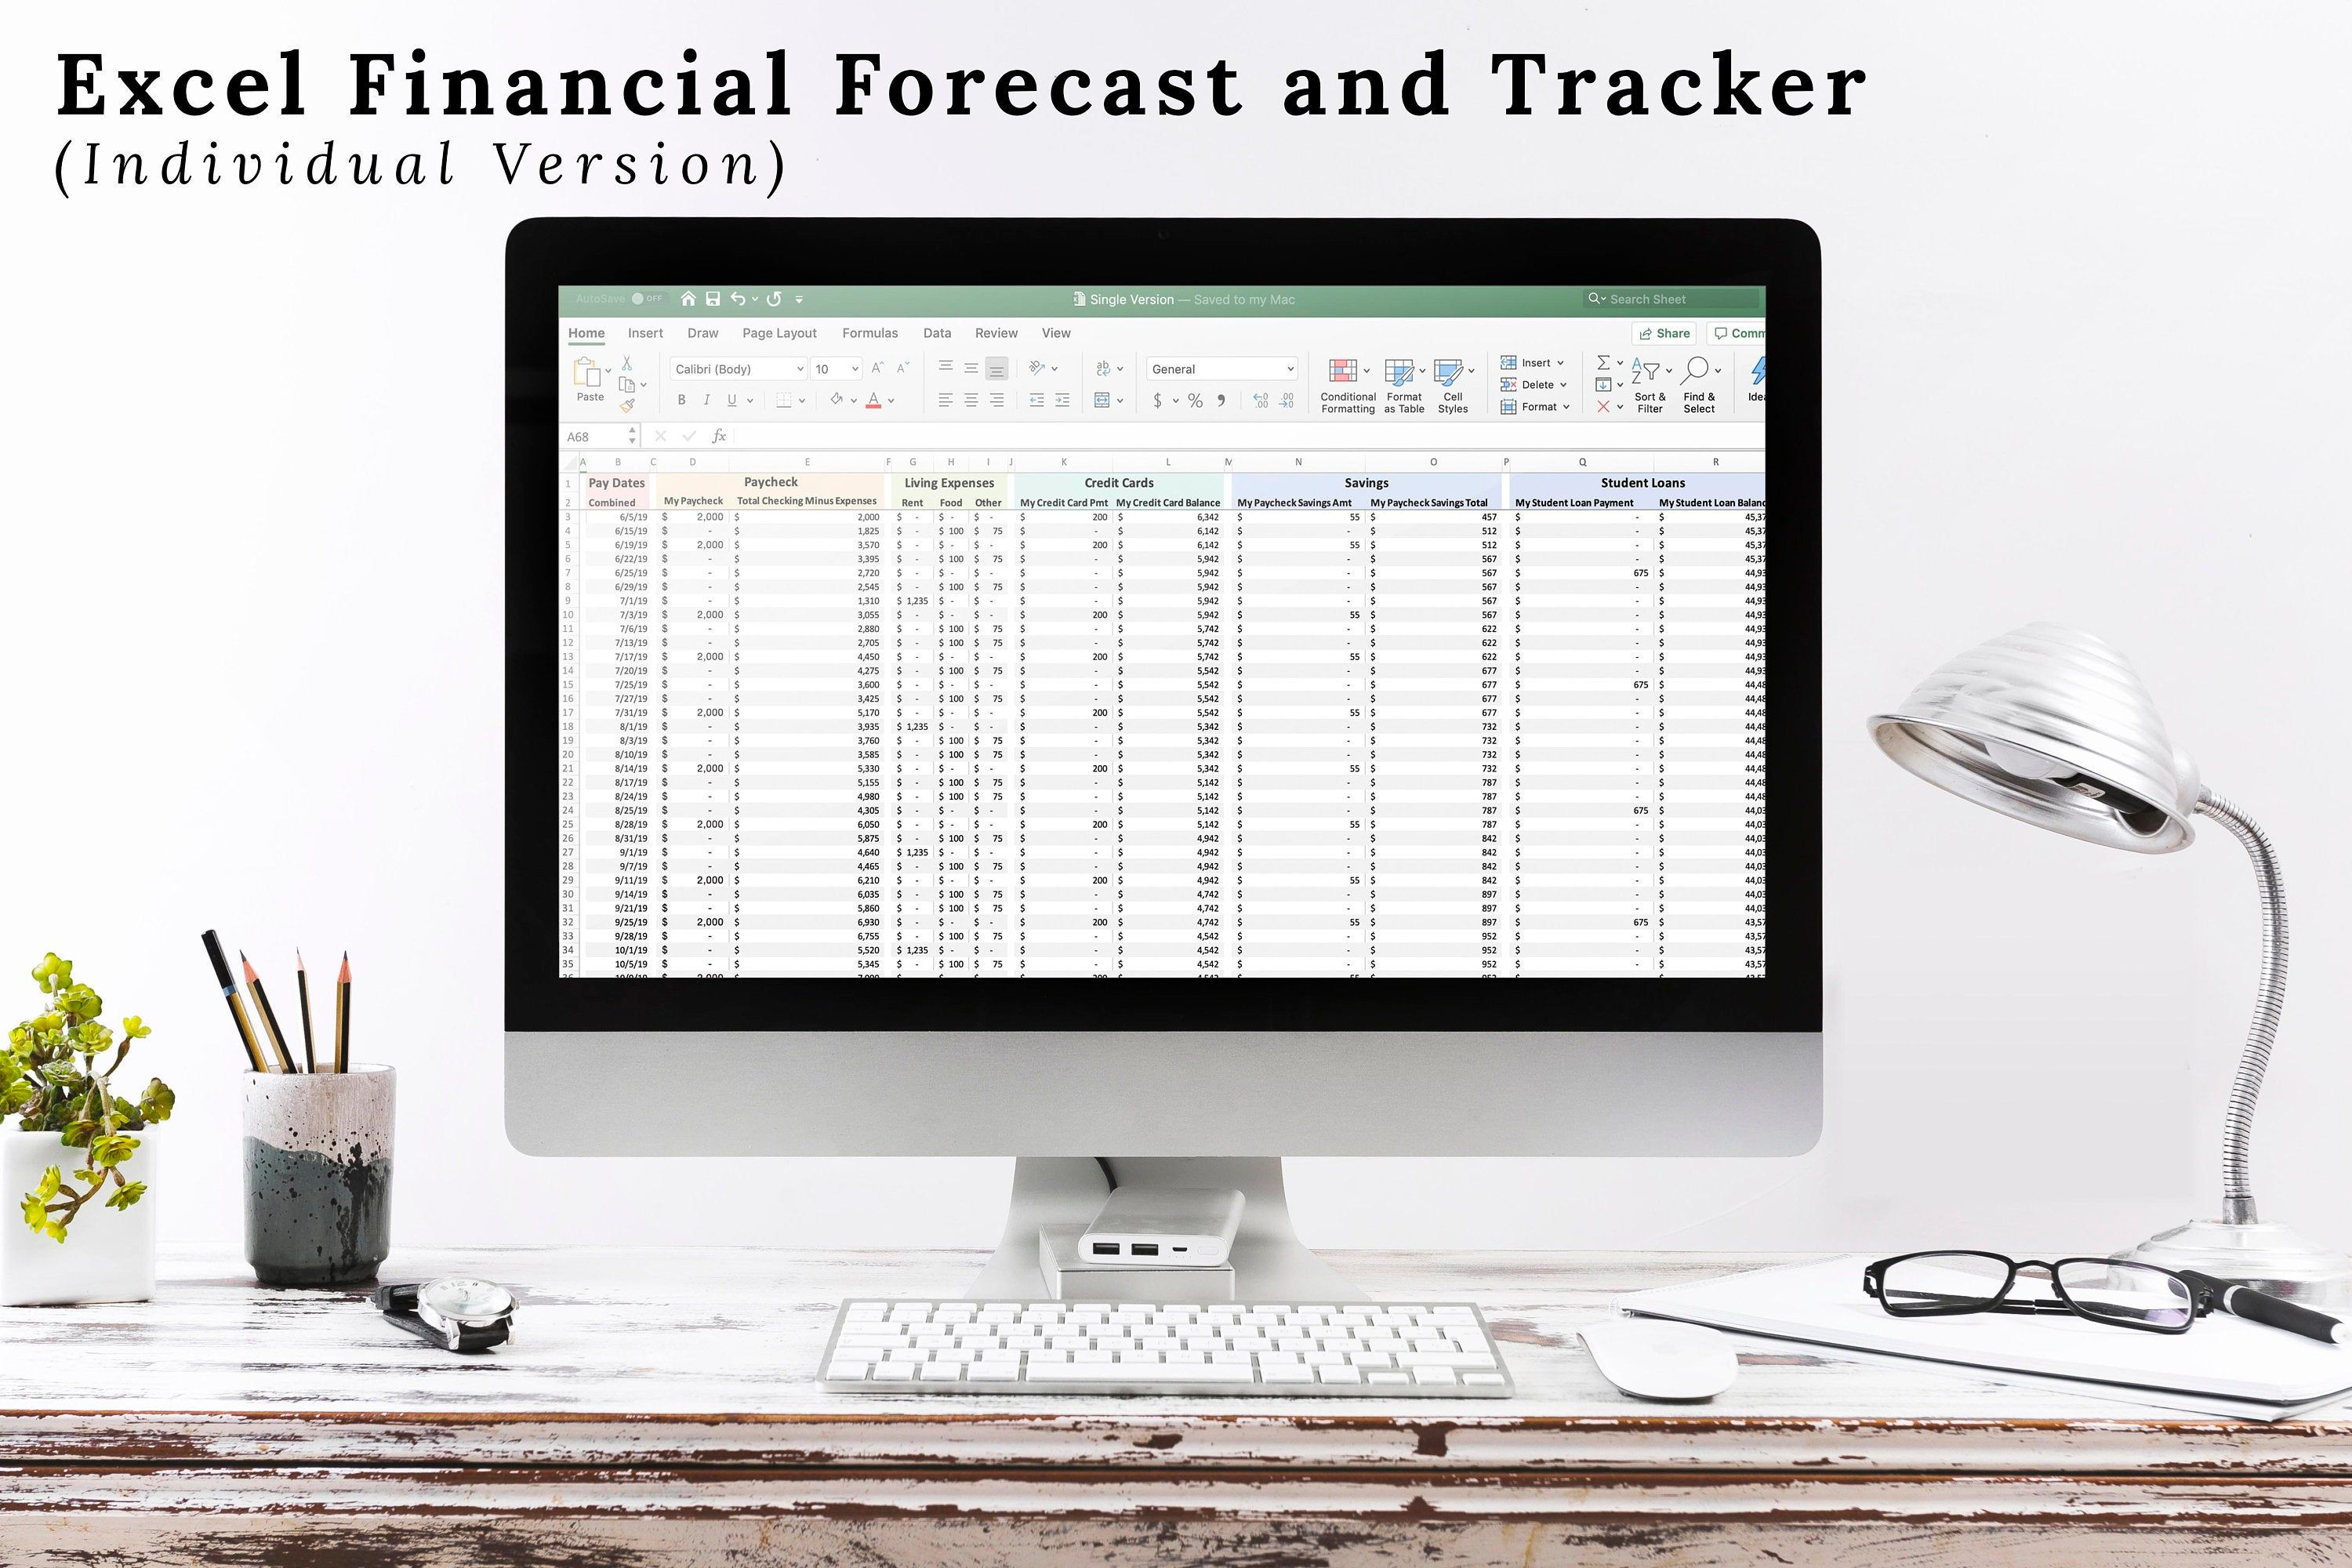 Excel Personal Finance Financial Forecast And Tracker